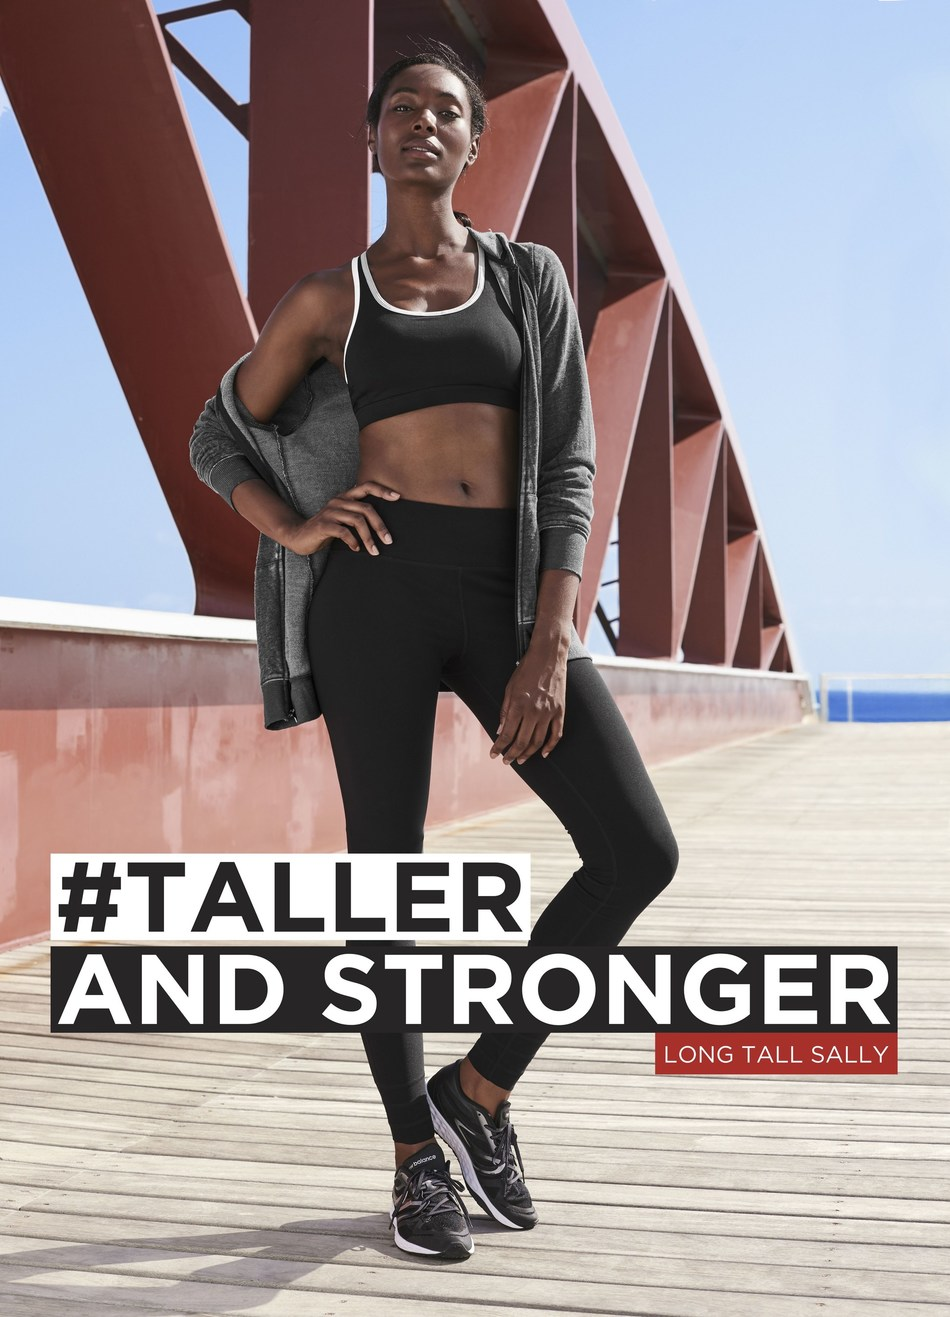 LONG TALL SALLY INTRODUCES THE FIRST FITNESS PROGRAMME FOR TALL WOMEN (PRNewsFoto/Long Tall Sally)